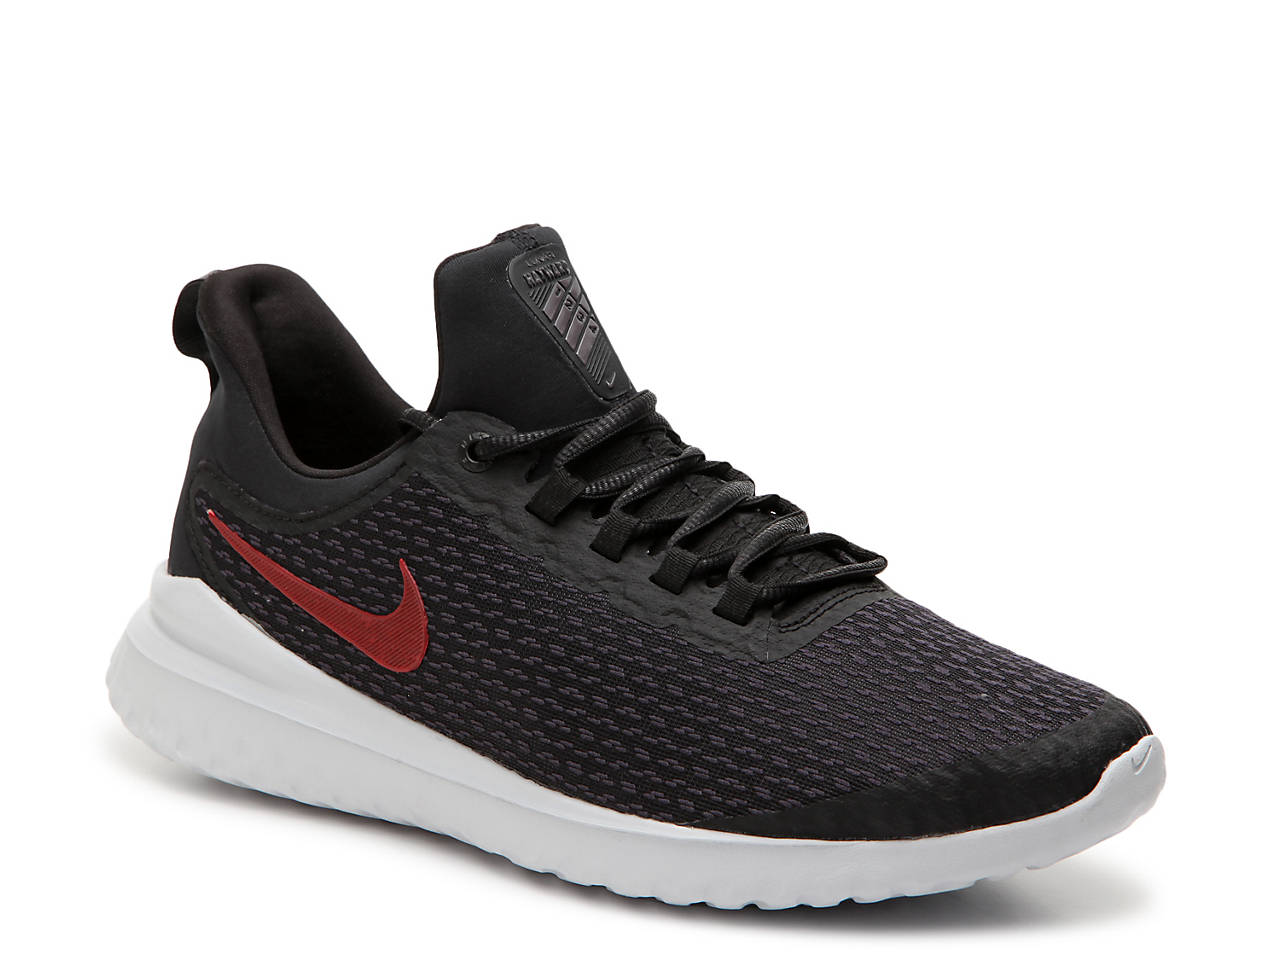 666734a68bd23 Nike Renew Rival Lightweight Running Shoe - Men's Men's Shoes | DSW